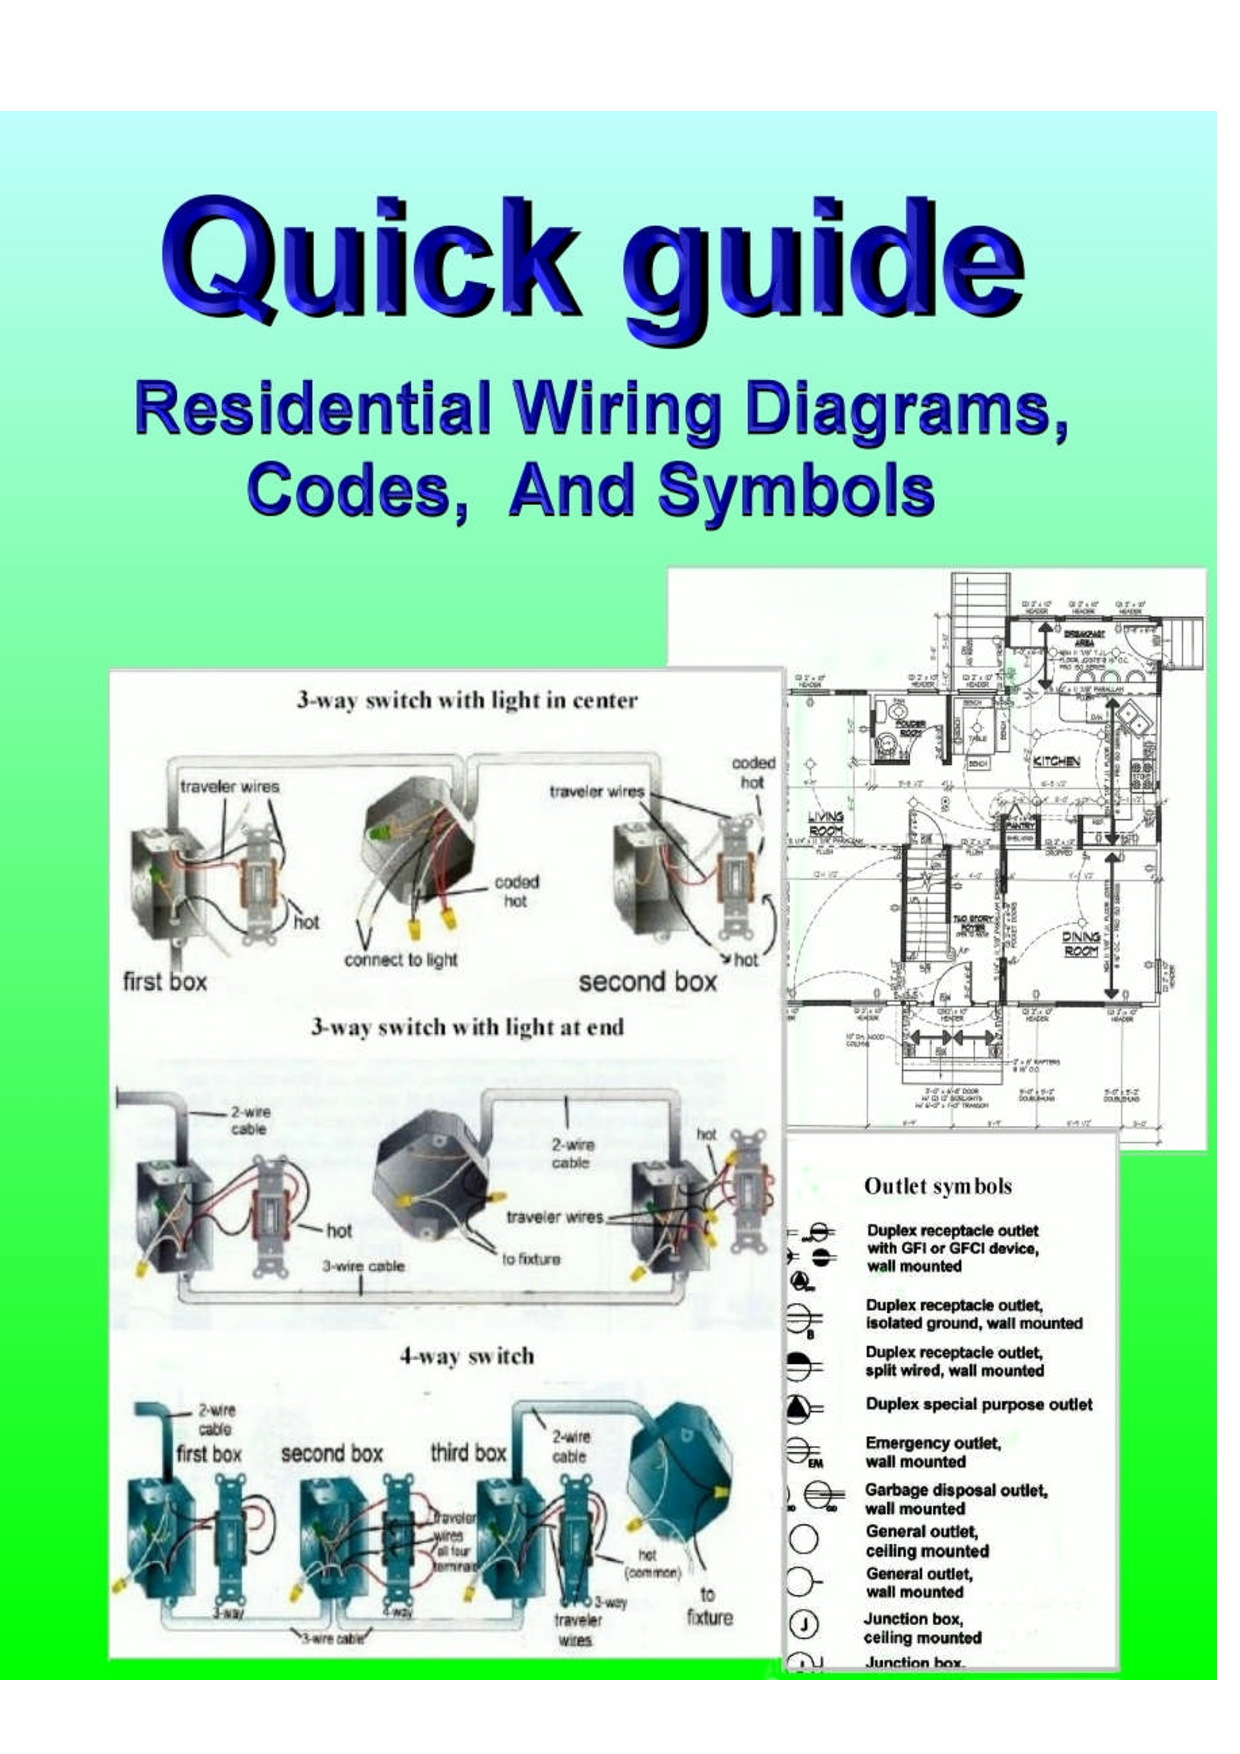 small resolution of home electrical wiring diagrams pdf download legal documents 39 pages with many diagrams and illustrations a step by step home wiring guide with diagrams